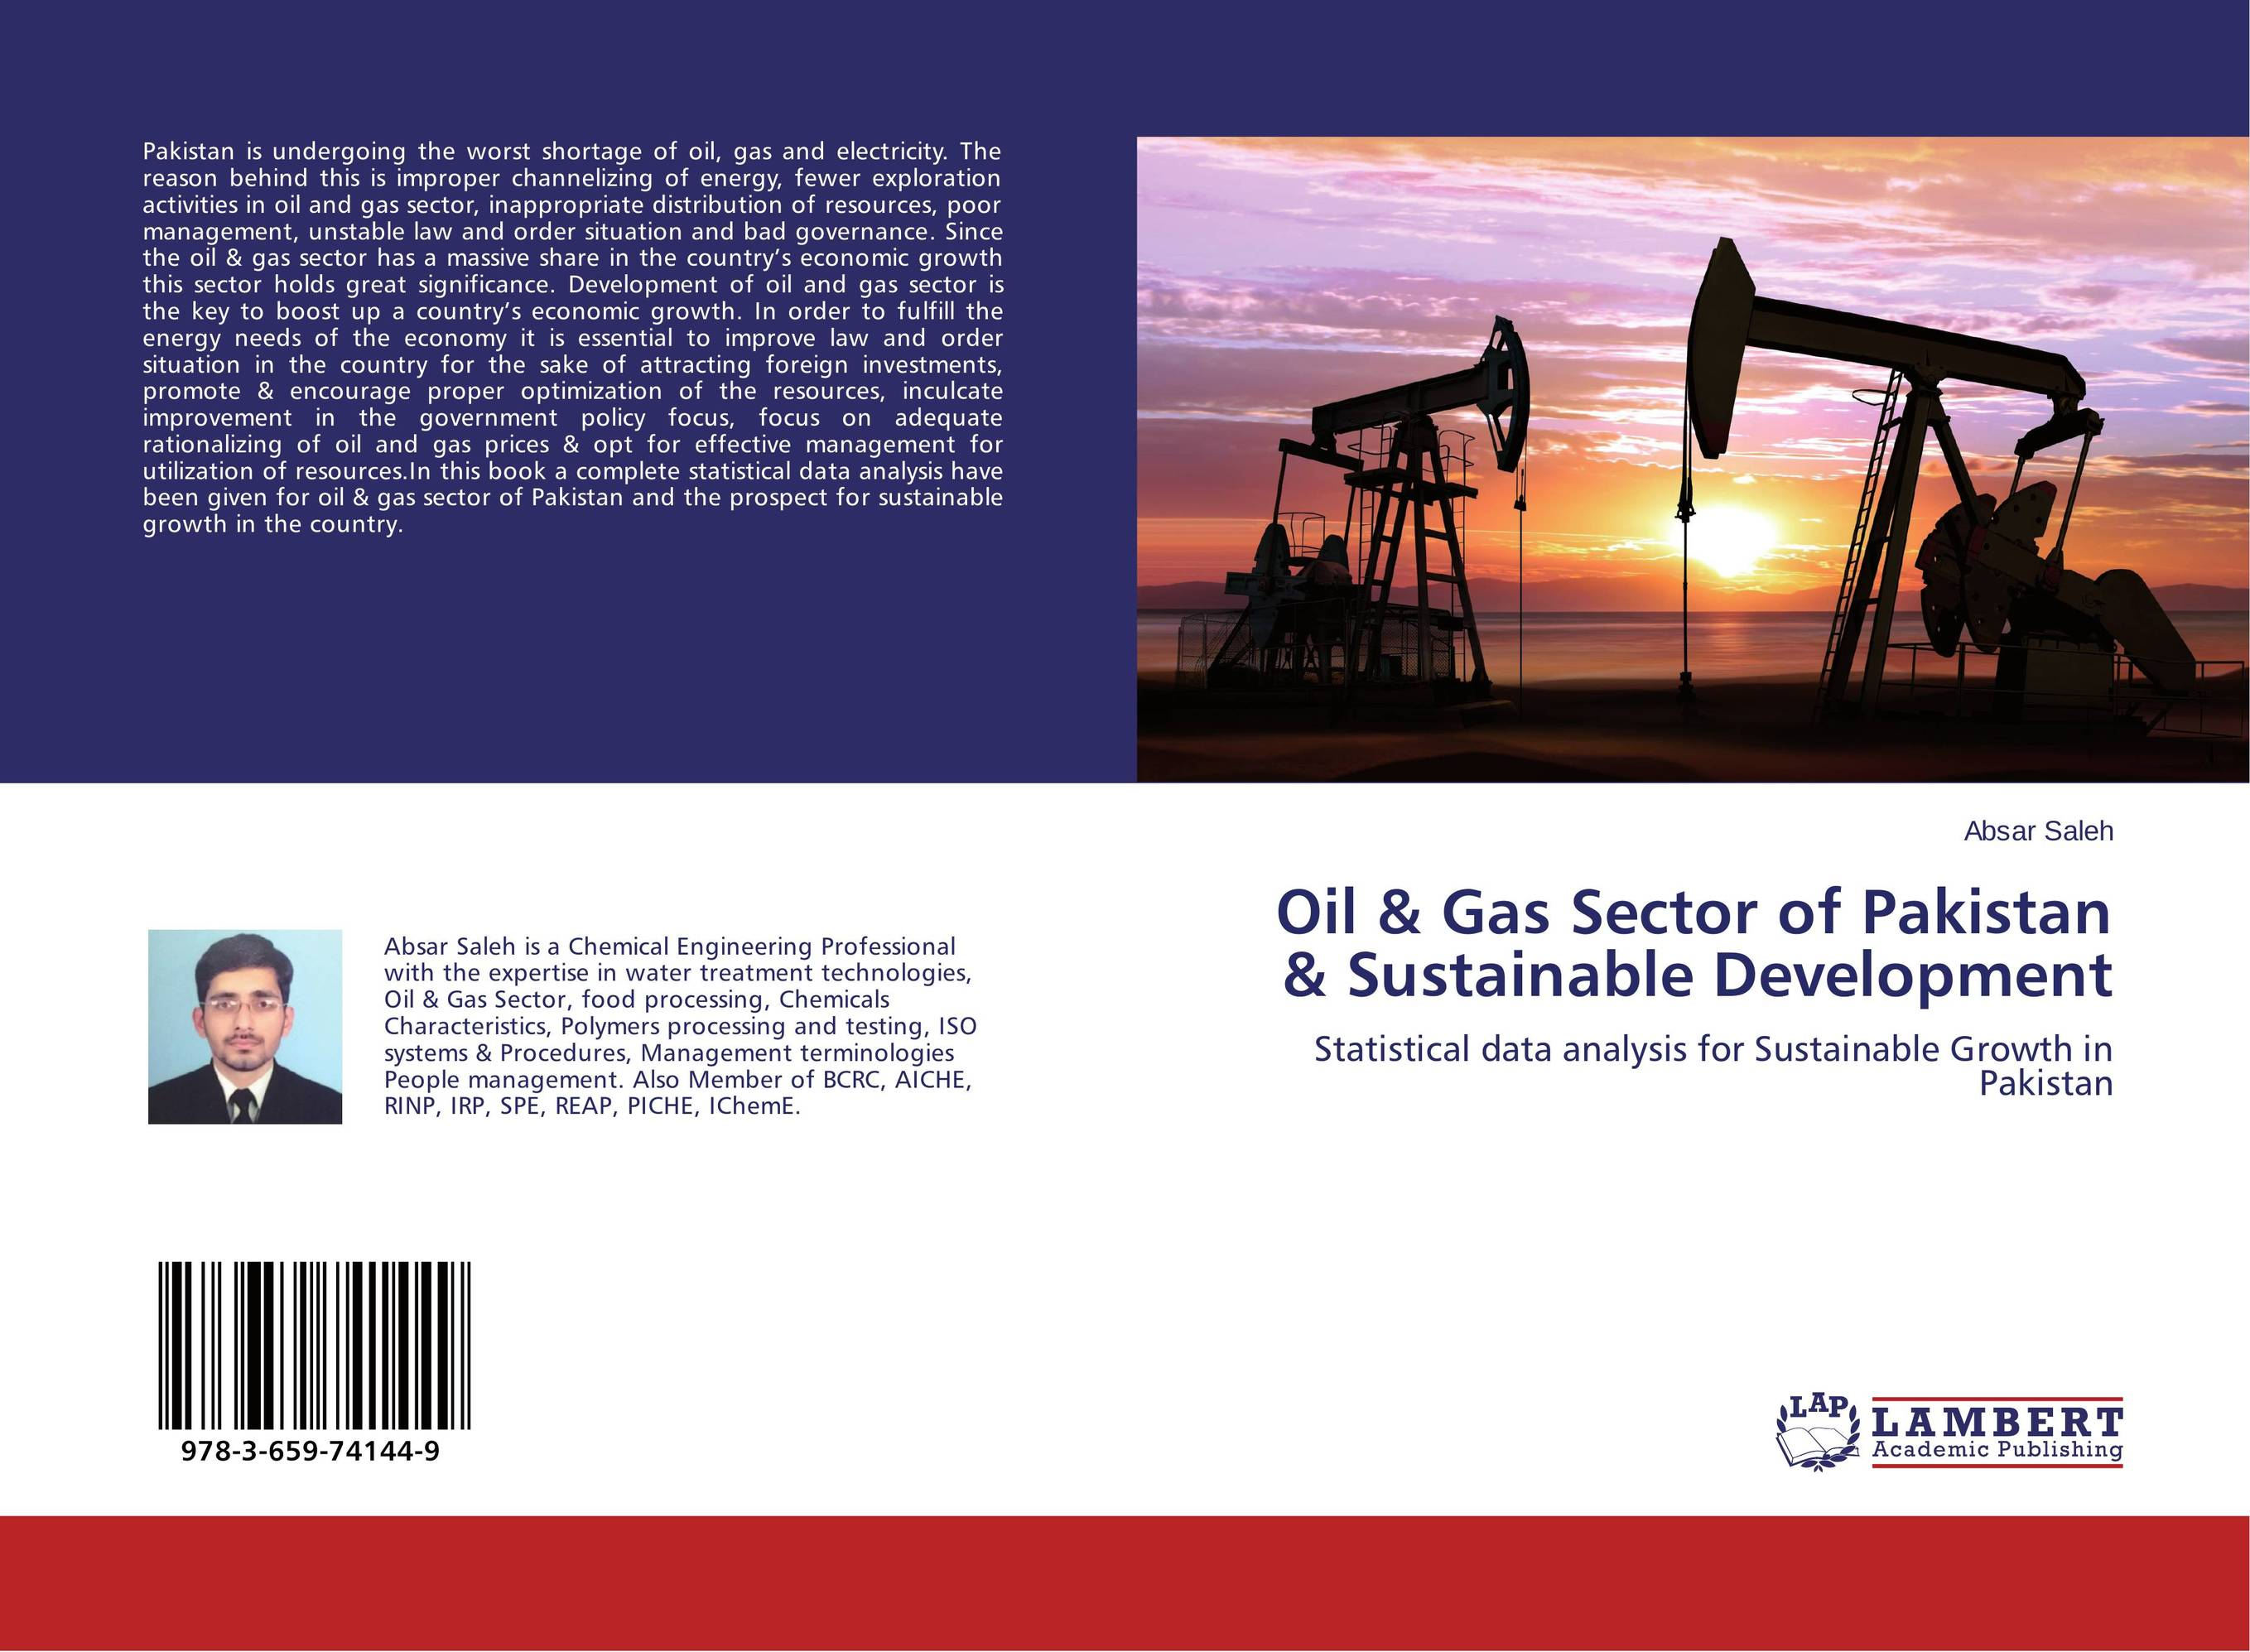 Oil & Gas Sector of Pakistan & Sustainable Development foreign aid and social sector of pakistan